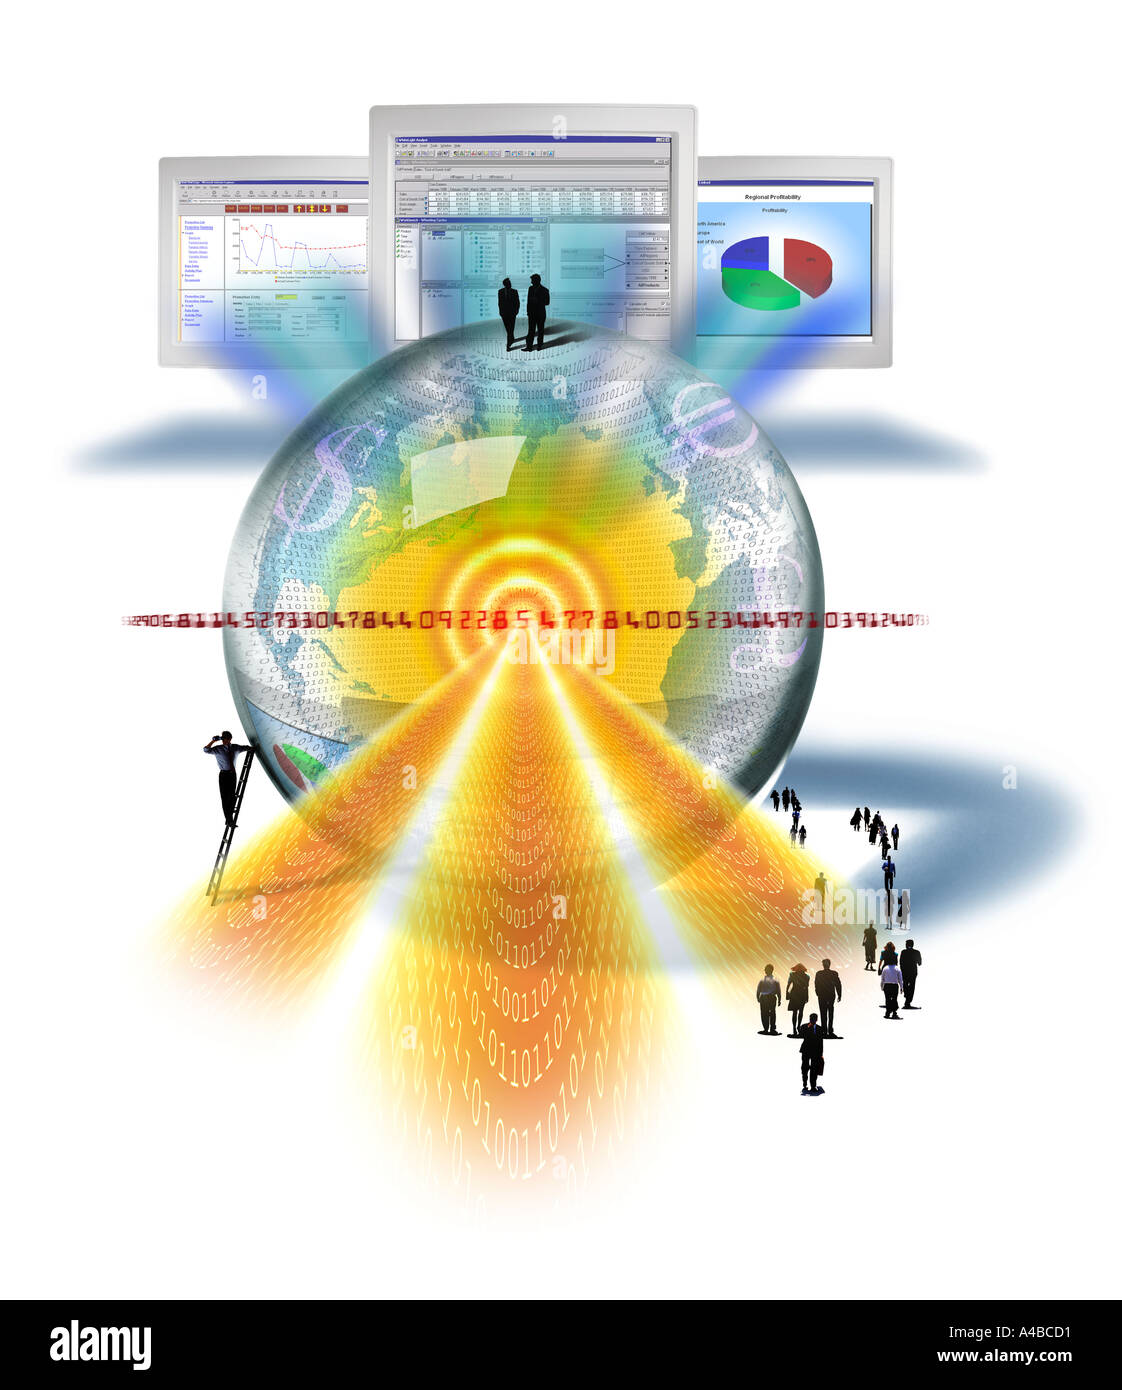 Collage representing forecasting financial software  - Stock Image